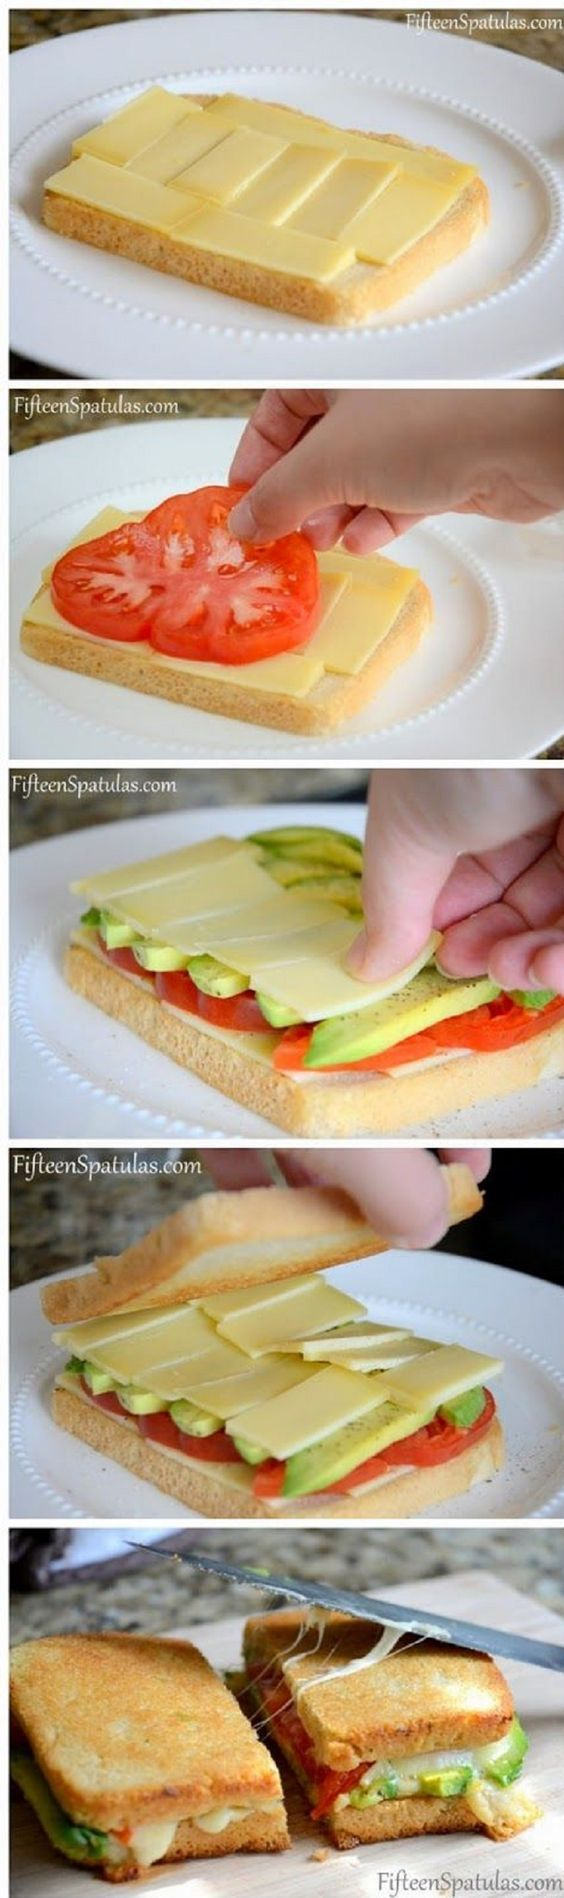 Grilled Cheese with Avocado and Heirloom Tomato - 16 Healthy Spring Recipes for Kids | GleamItUp